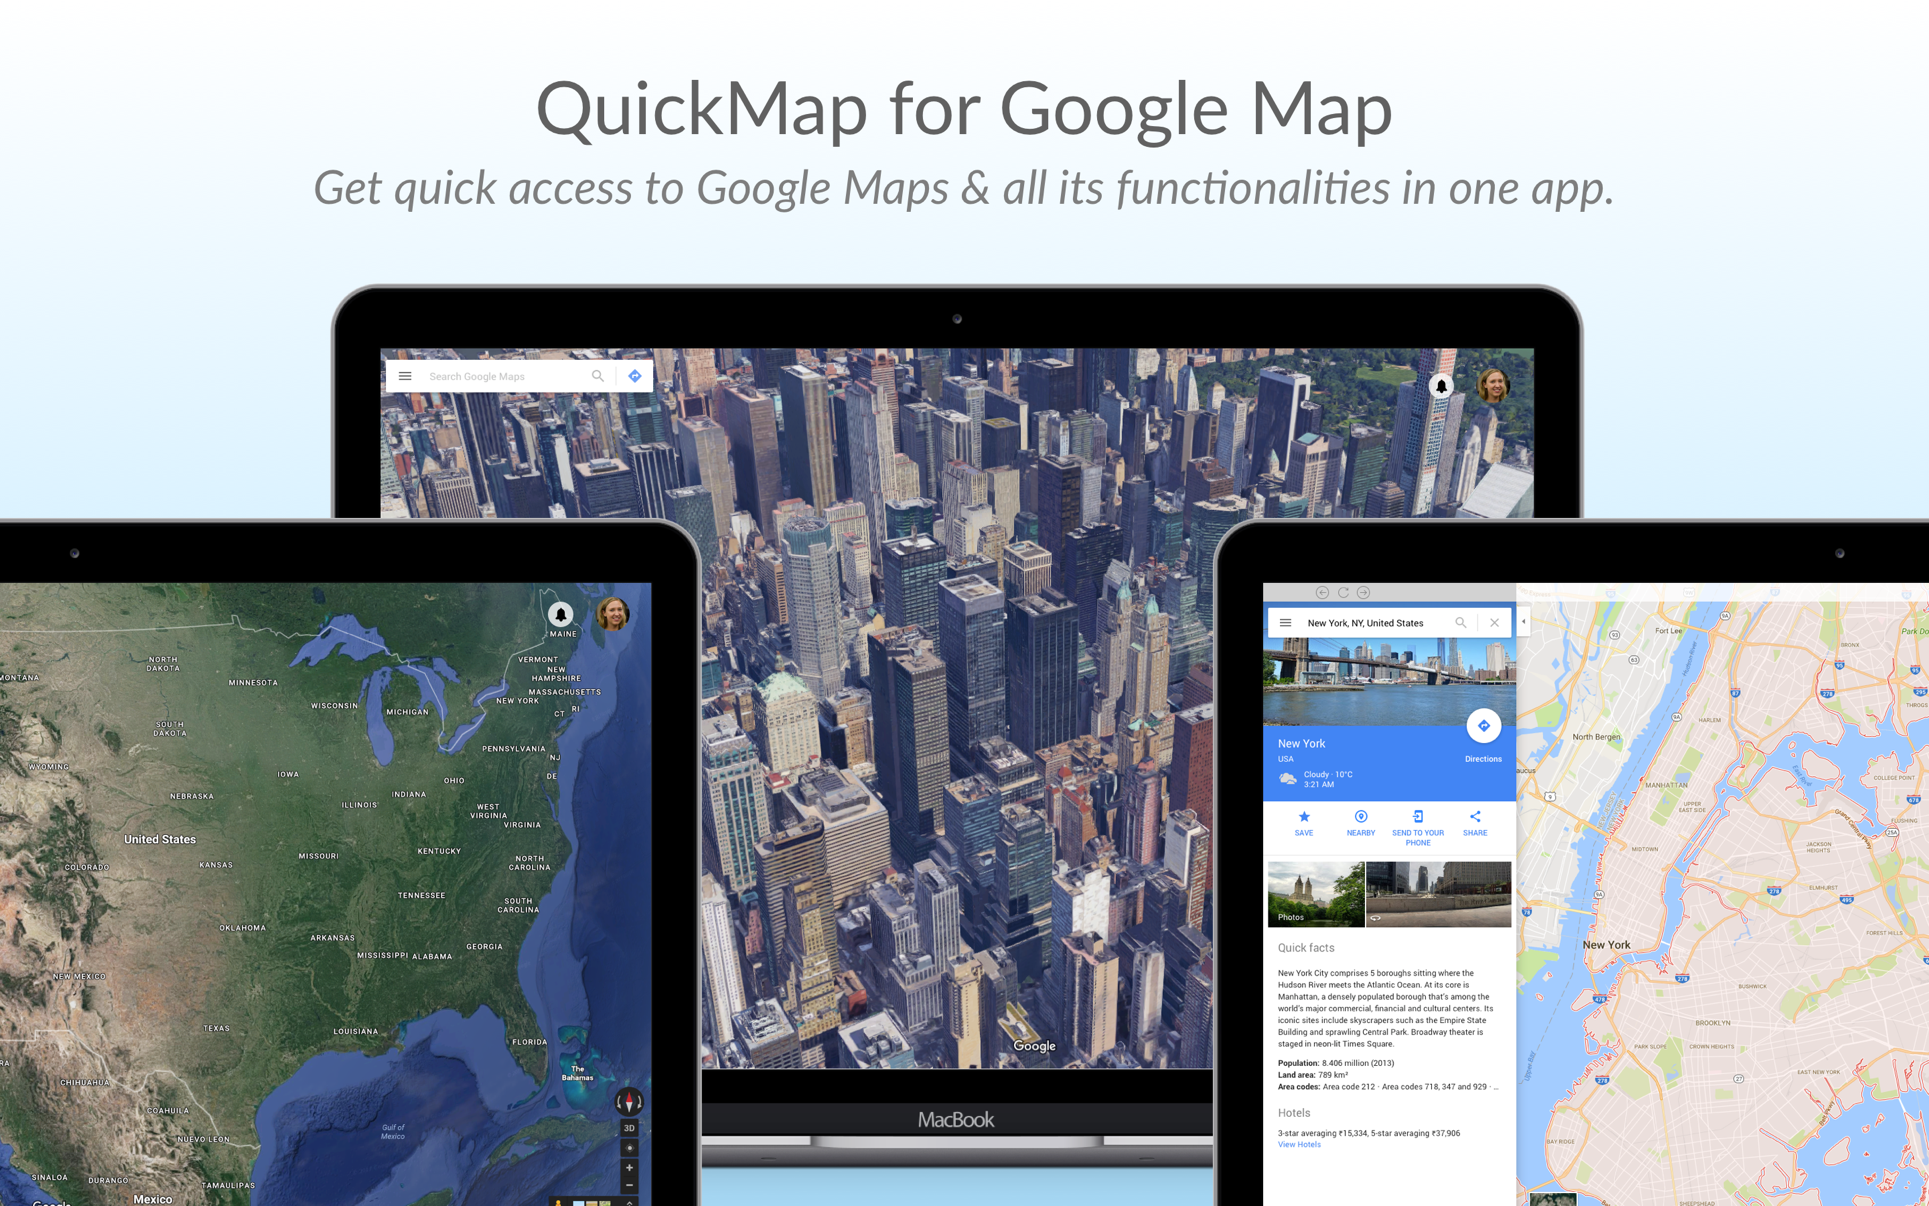 QuickMap for Google Map on the Mac App Store on downloader for mac, hot keys for mac, emacs for mac, dragon naturally speaking for mac, cool applications for mac, java for mac, new os for mac, ios for mac, roms for mac, whatsapp for mac, ip address for mac, intel for mac, text to speech for mac, mail for mac, sap for mac, msn for mac, freeware software for mac, avg antivirus for mac, power point for mac, task manager for mac,